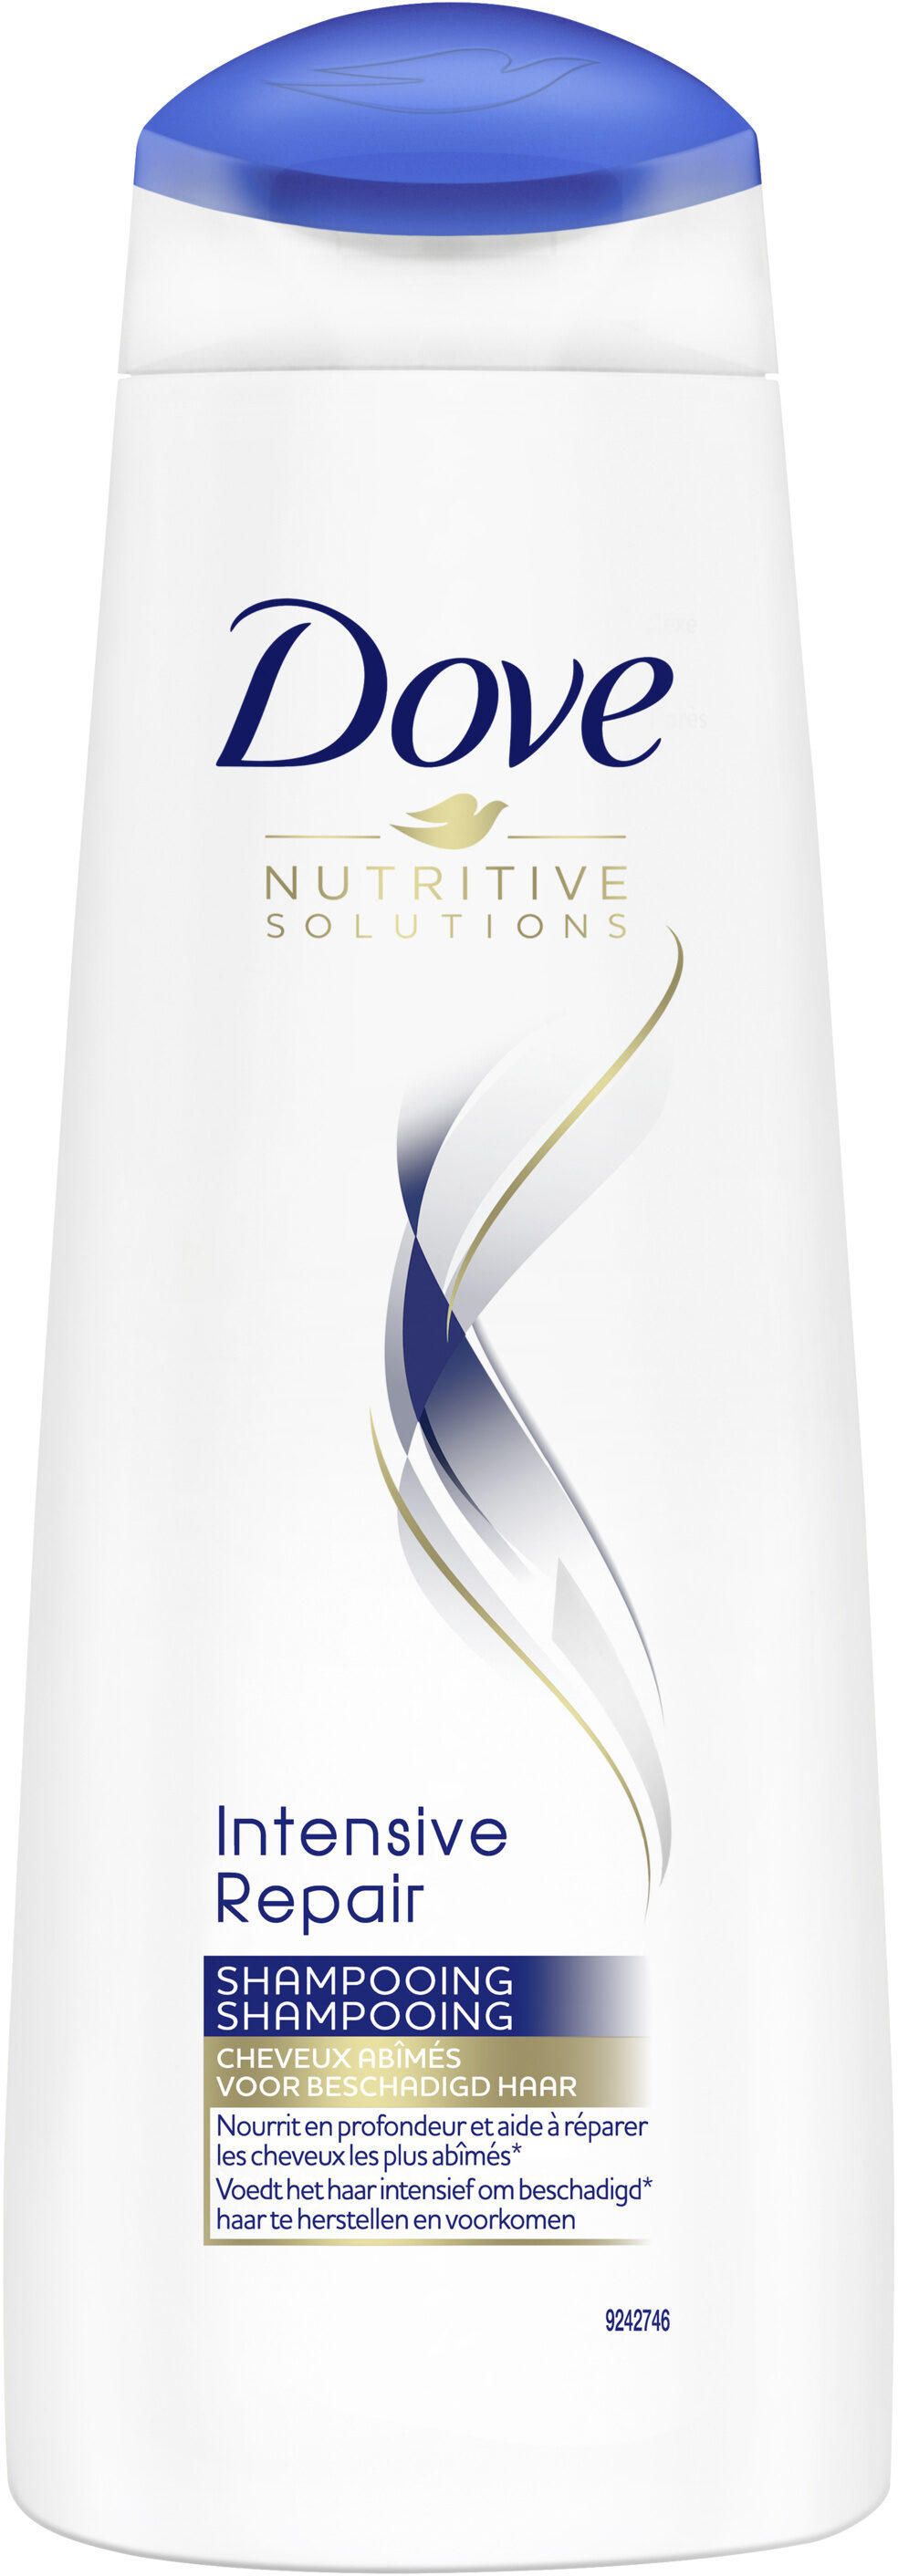 Dove Shampoing Réparation Intense - Product - fr